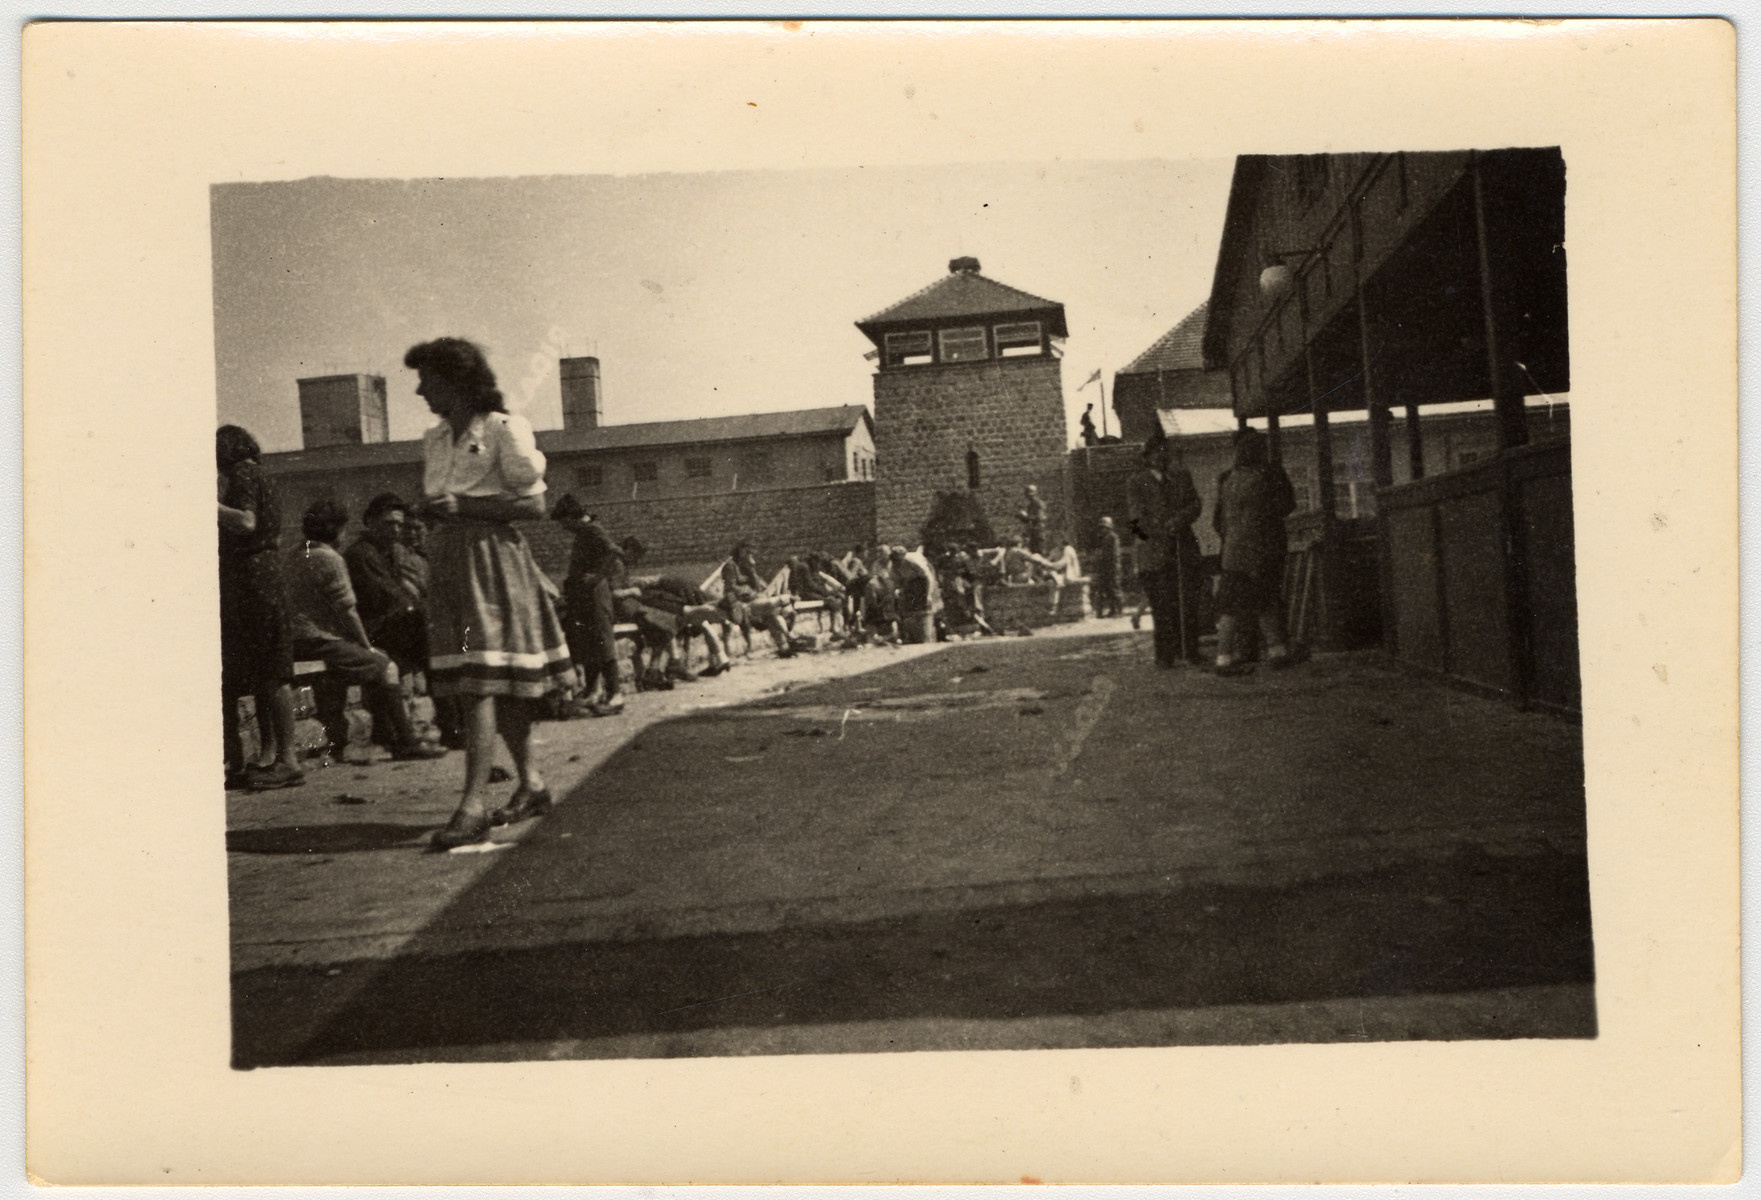 A woman [probably an Austrian civilian] walks past survivors in the Mauthausen concentration camp.